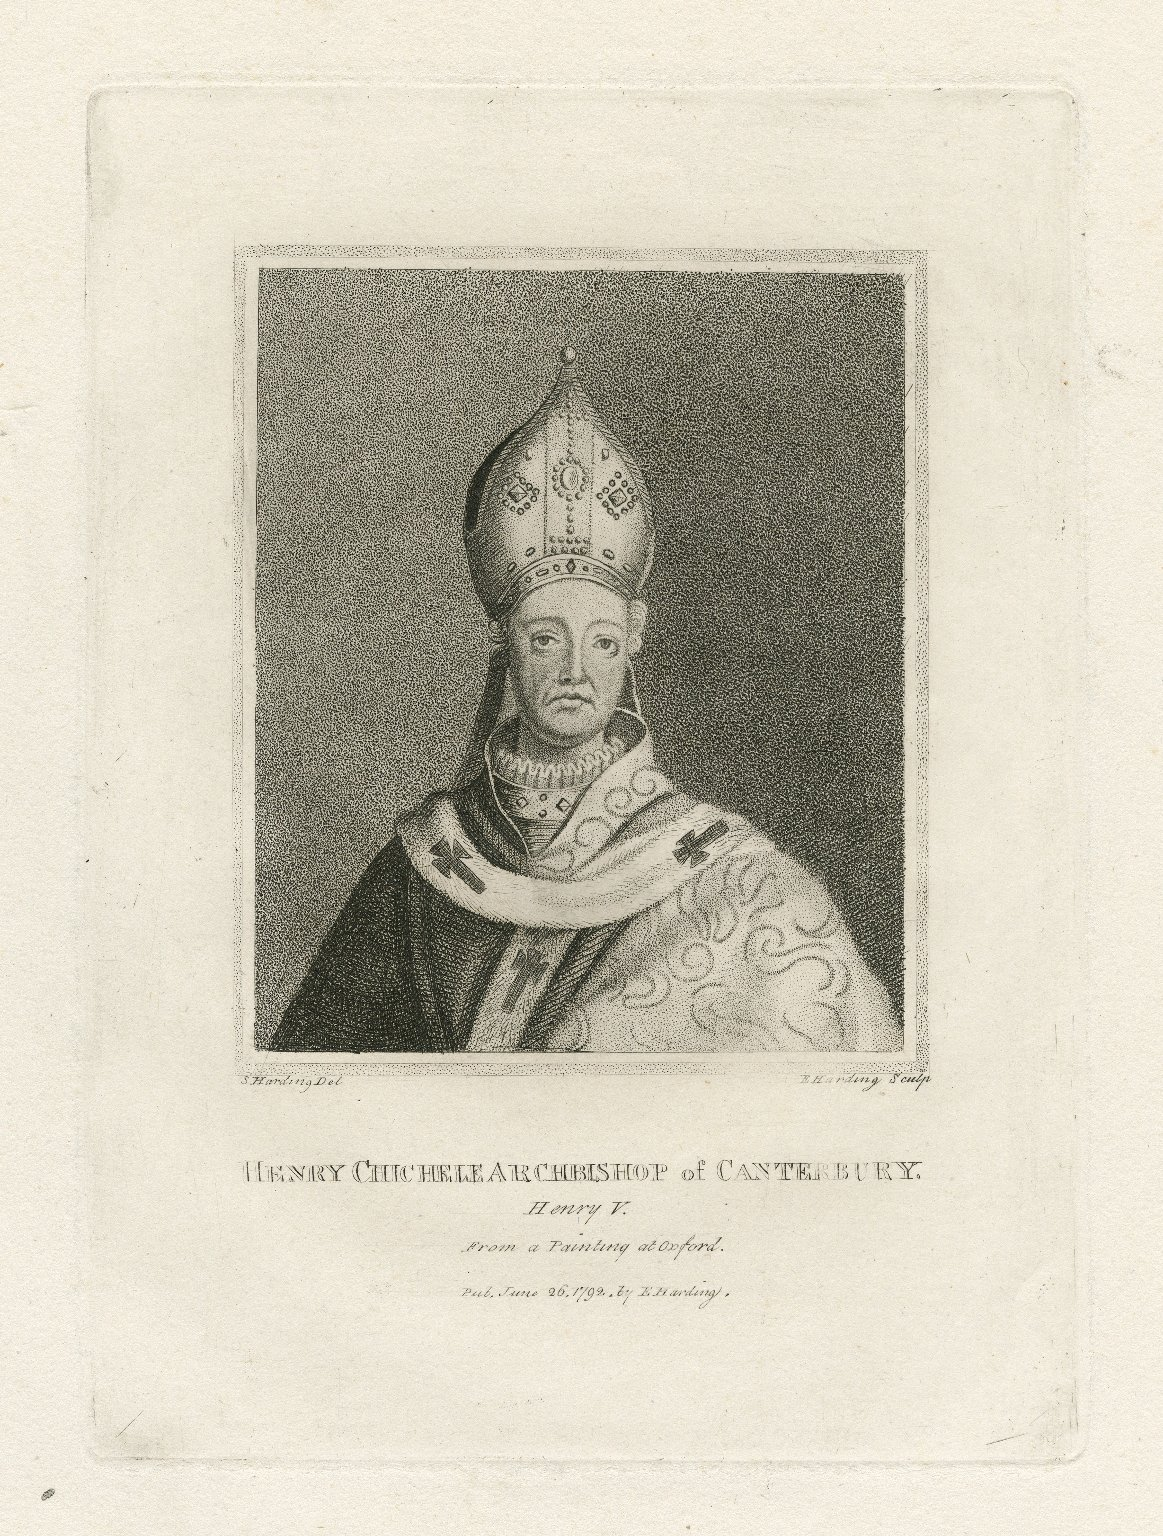 Henry Chichele, Archbishop of Canterbury, Henry V., from a painting at Oxford [graphic] / S. Harding, del. ; E. Harding, sculp.